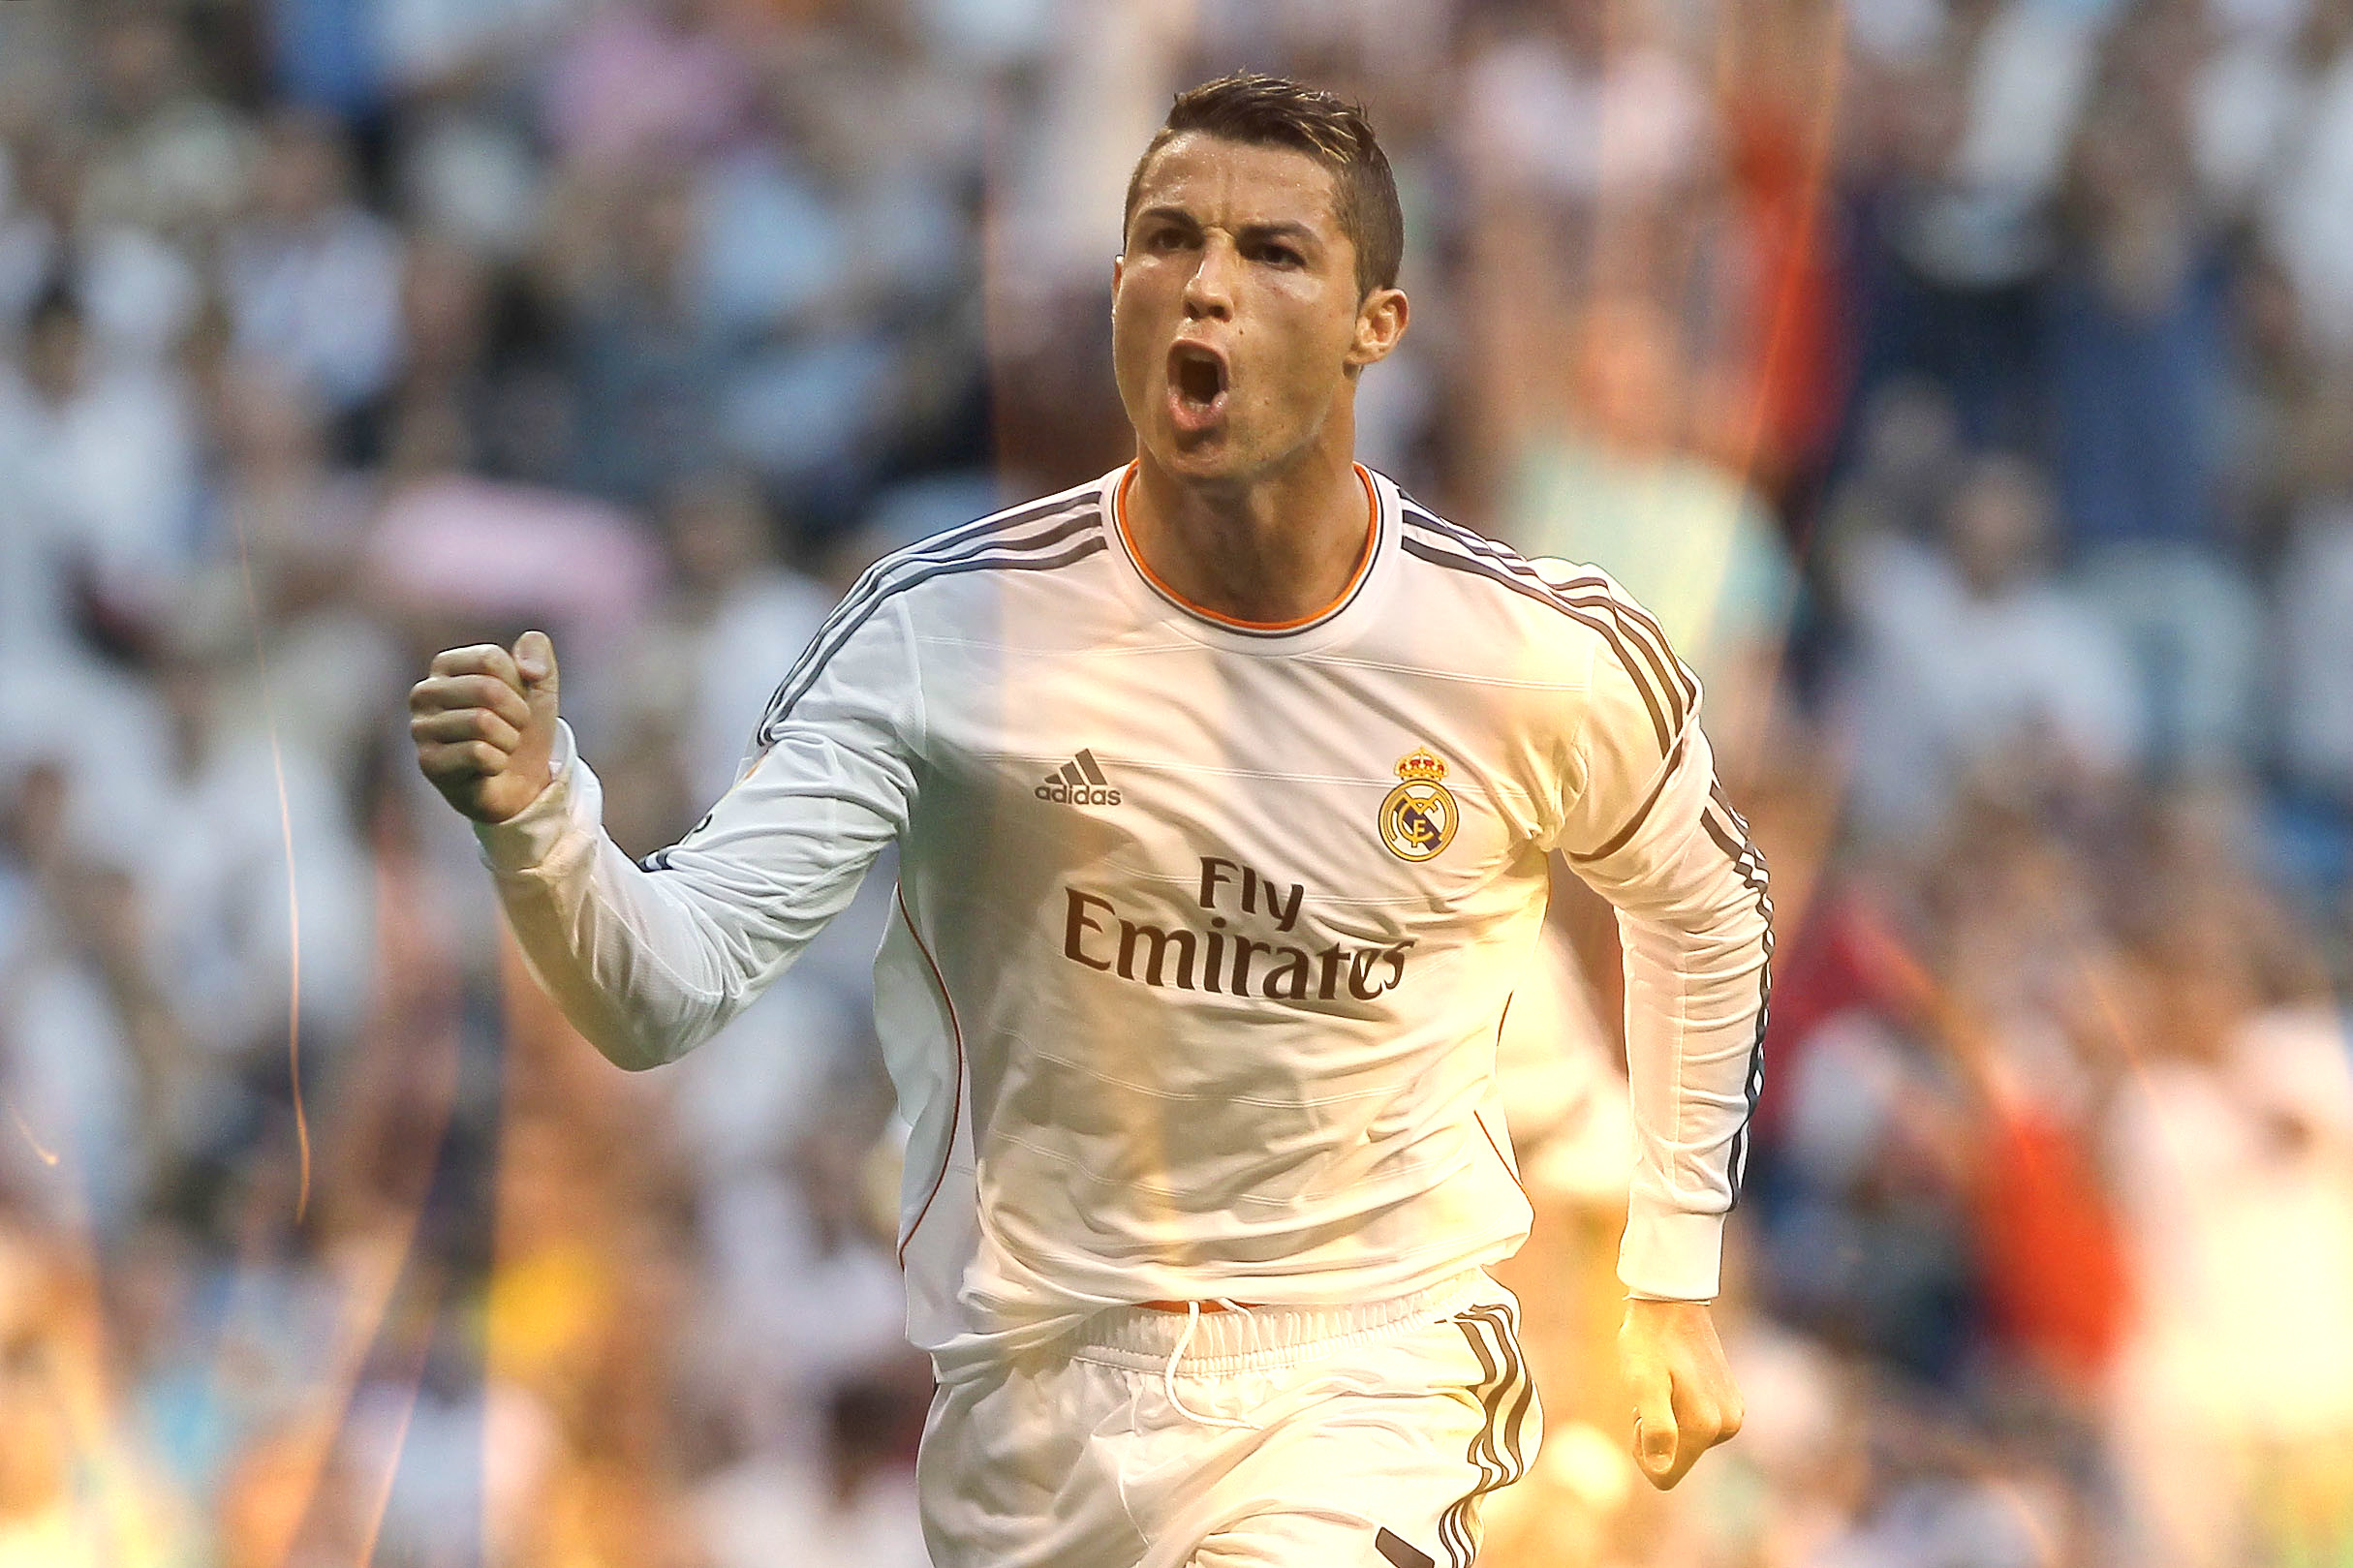 2429x1619 Best Cristiano Ronaldo Celebration Wallpapers Full HD 2015 2016